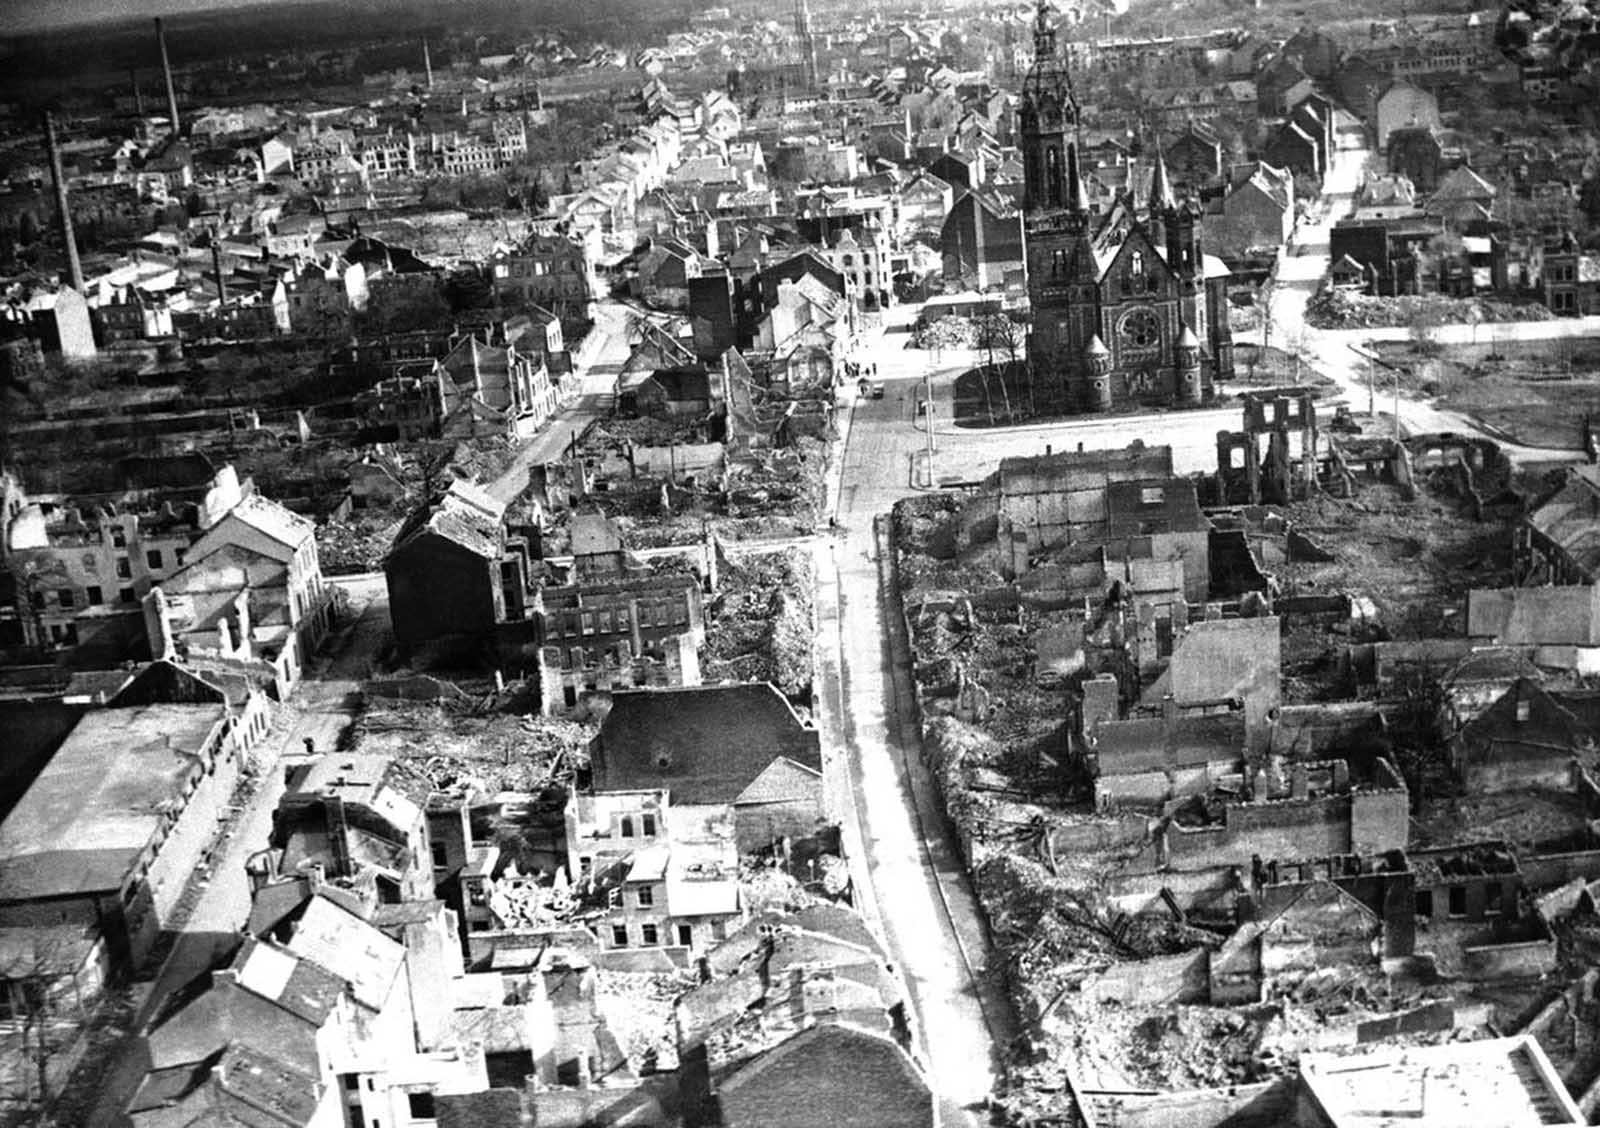 In Europe, some churches have been completely ruined, but others still stand amid utter devastation. Munchengladbach Cathedral stands here in the rubble, though still in need of repairs, seen in Germany, on November 20, 1945.